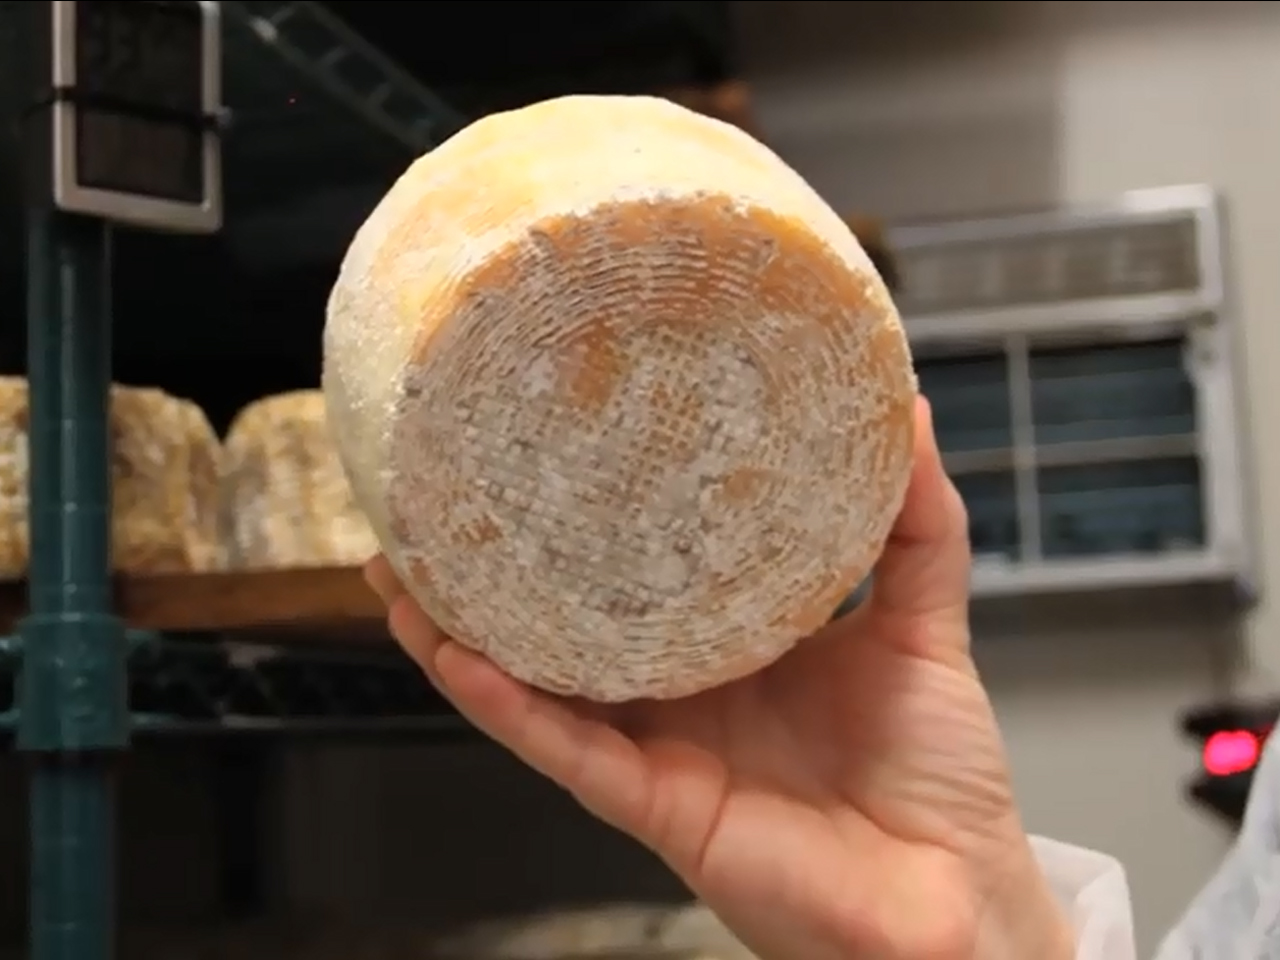 Scientists create cheese from human toe bacteria - CBS News